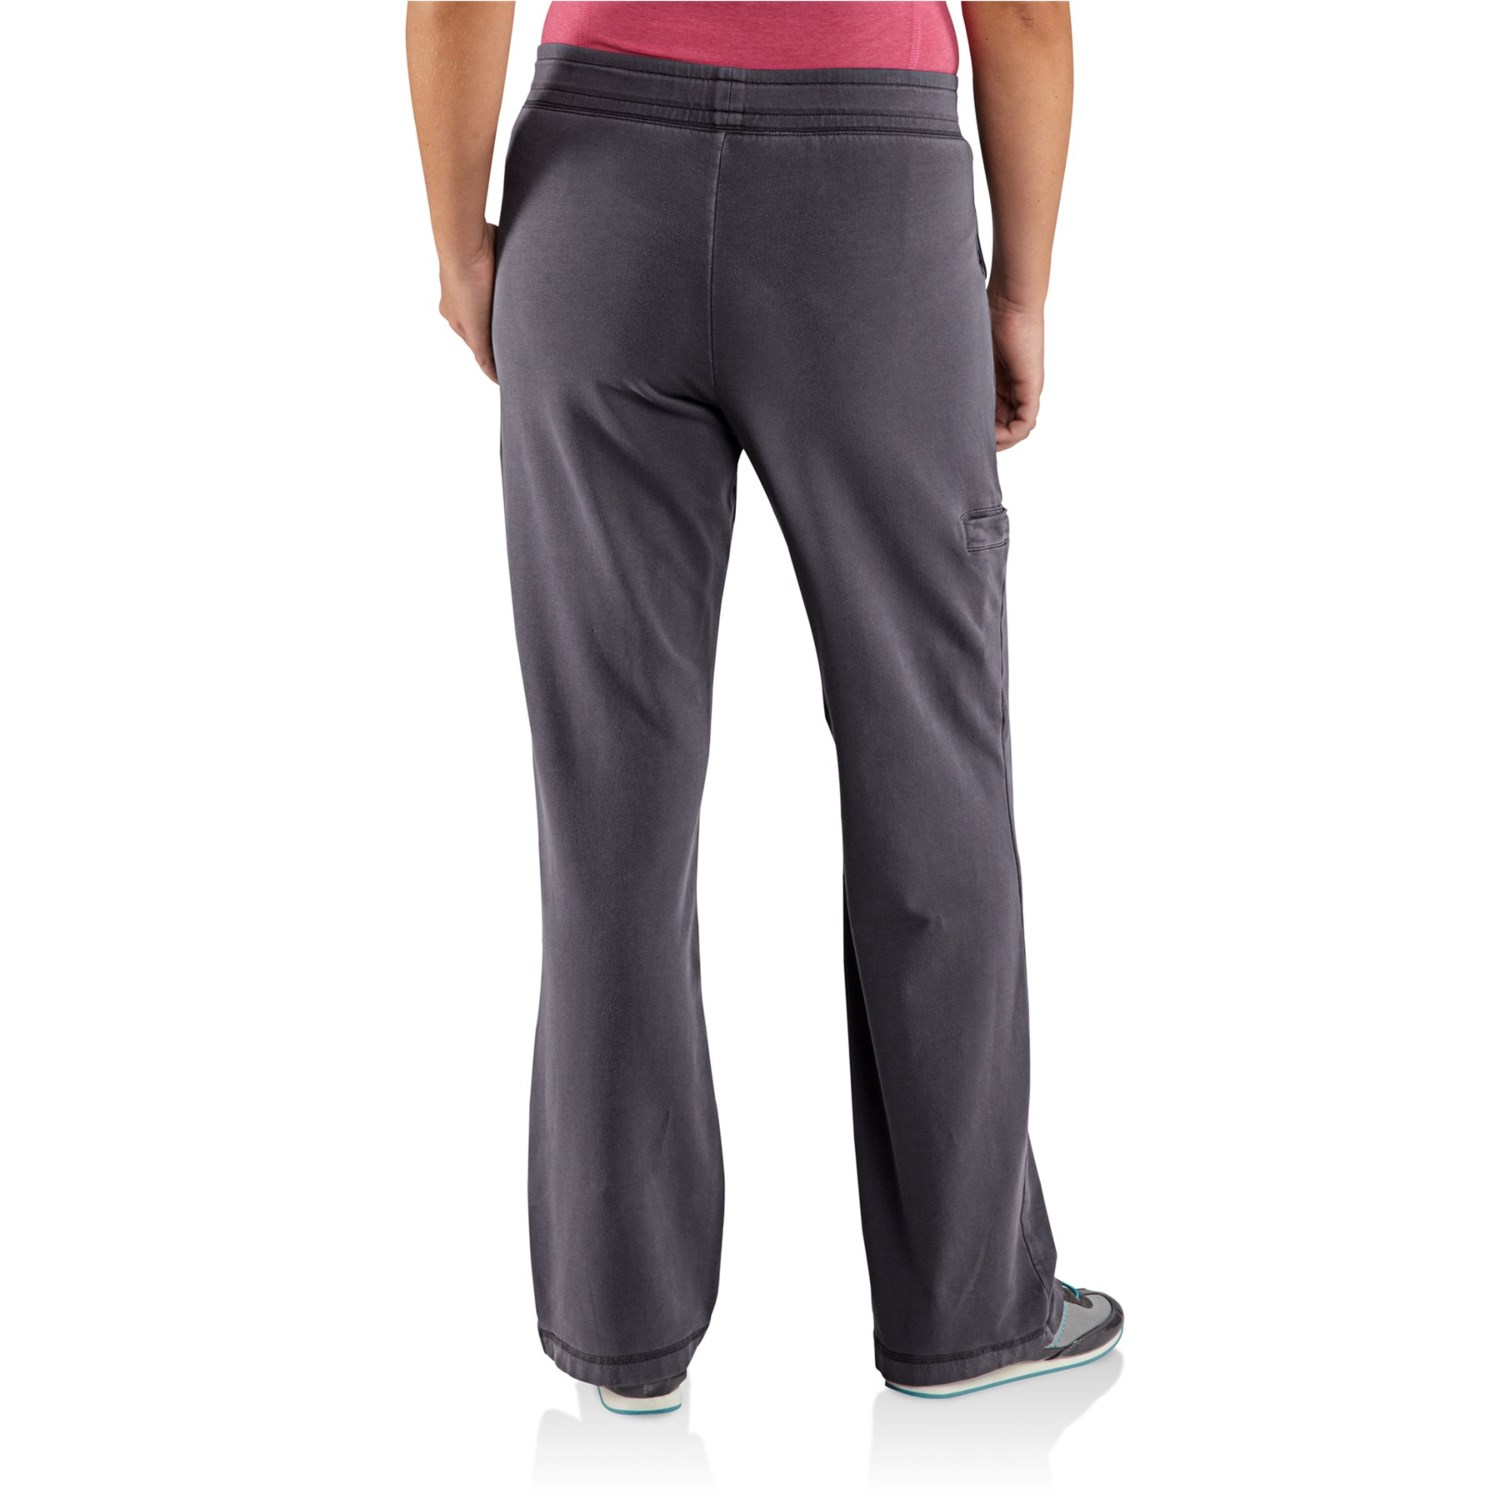 Popular Patagonia Women39s Fitted Corduroy Pants